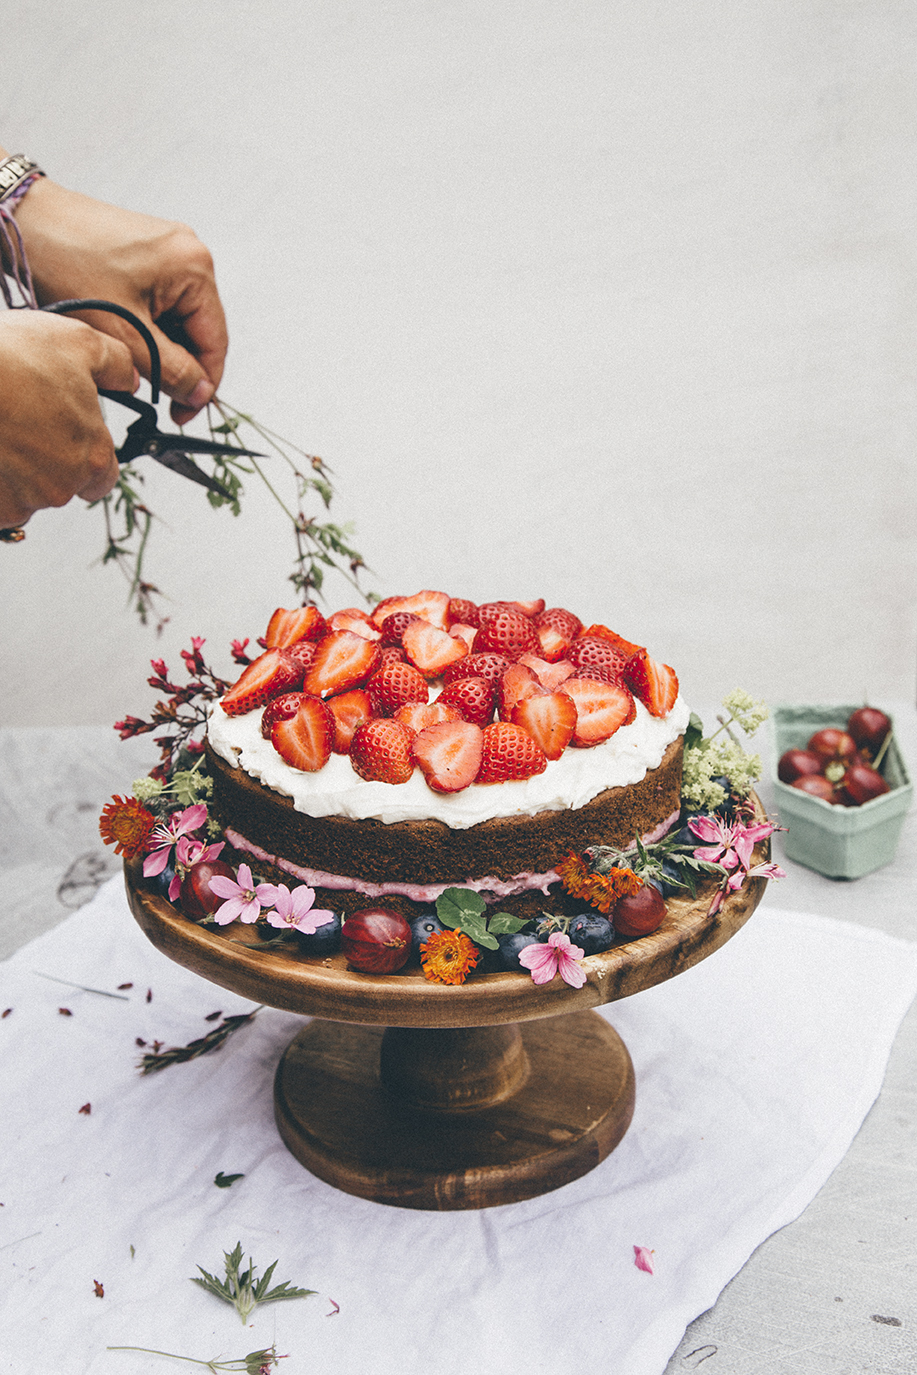 I revisited Swedish classics this year, adding my own twists. This strawberry Midsummer cake was a favorite!